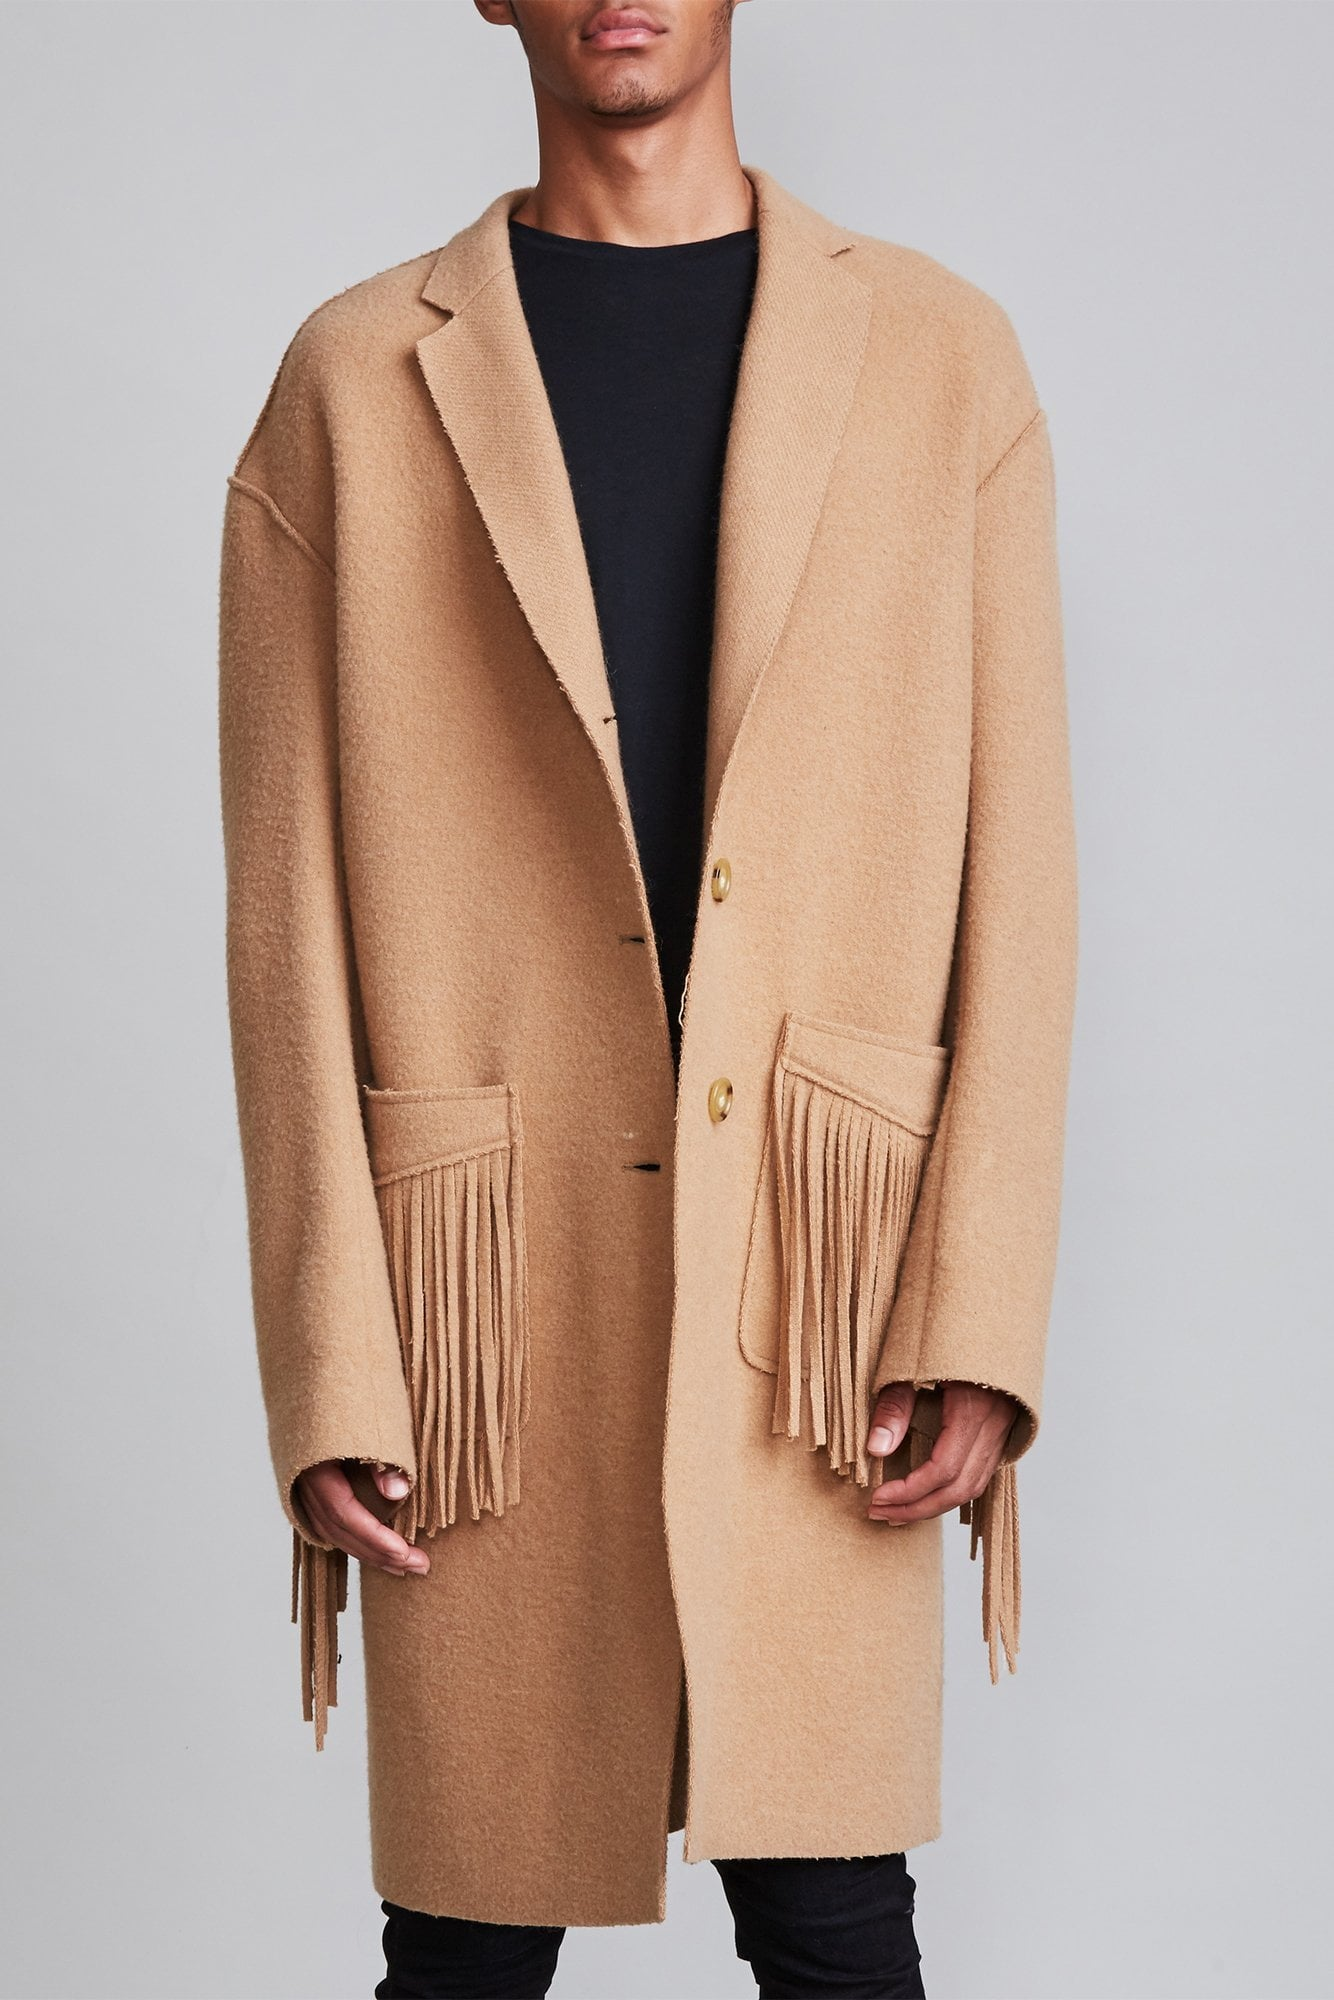 Fringe Raw Cut Coat - Camel